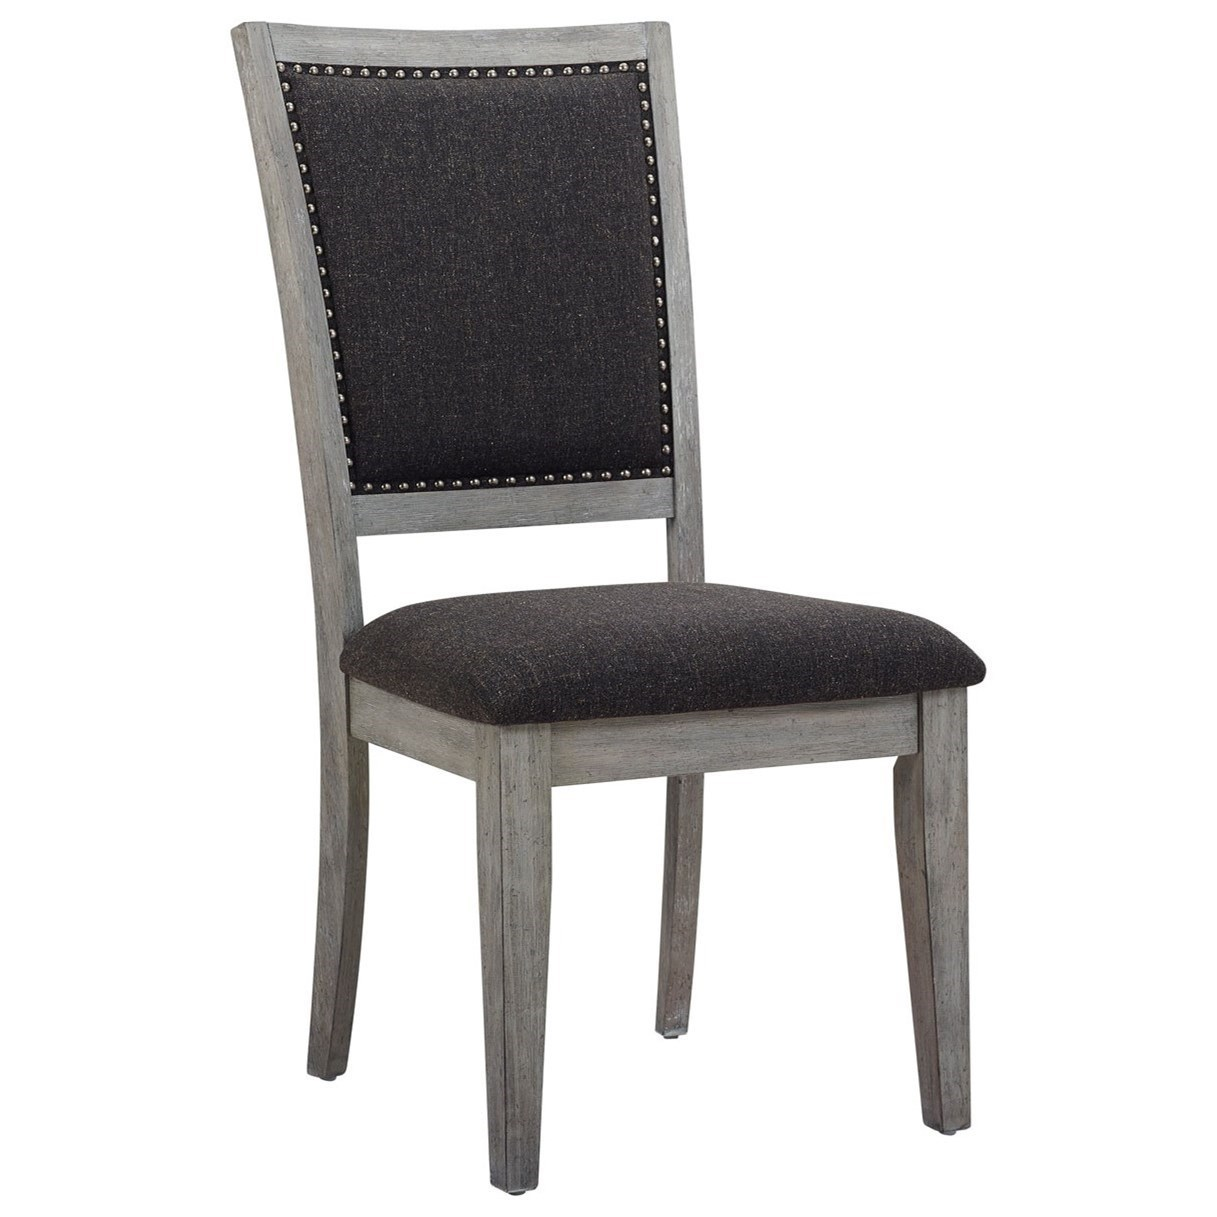 Casual Side Chair with Nailhead Trim